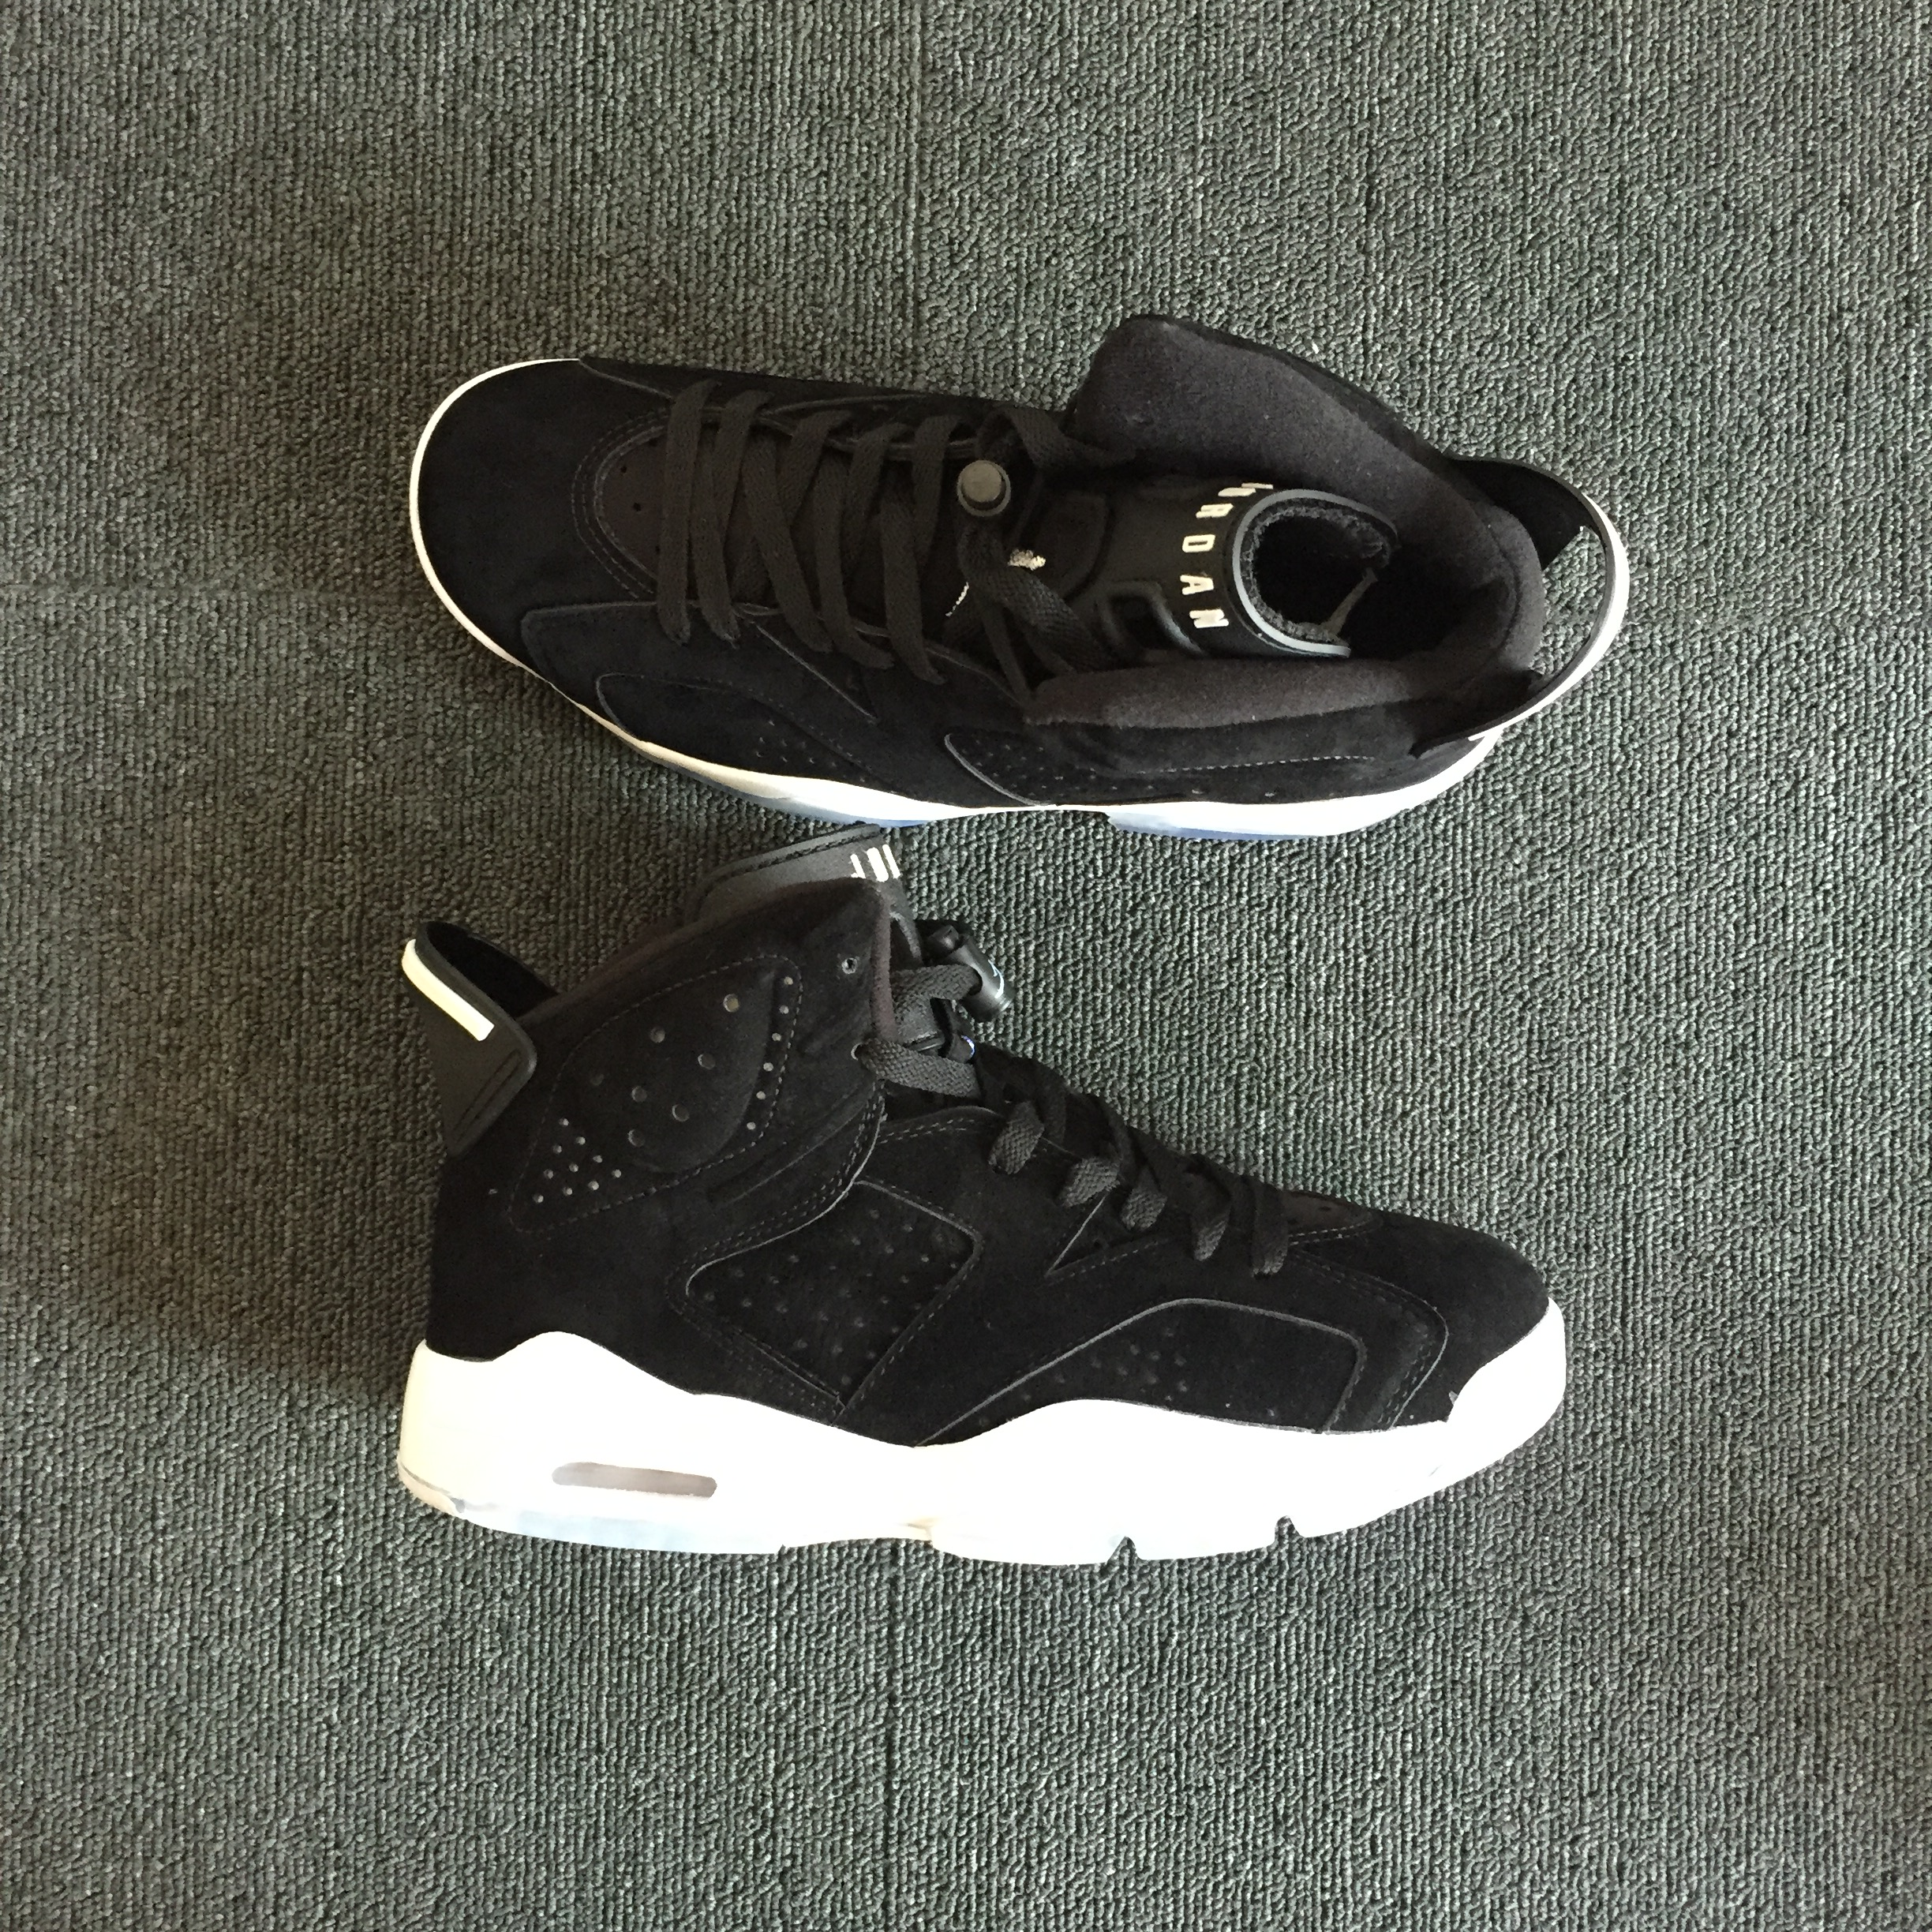 New Men Air Jordan 6 Retro Deer Skin Black White Shoes